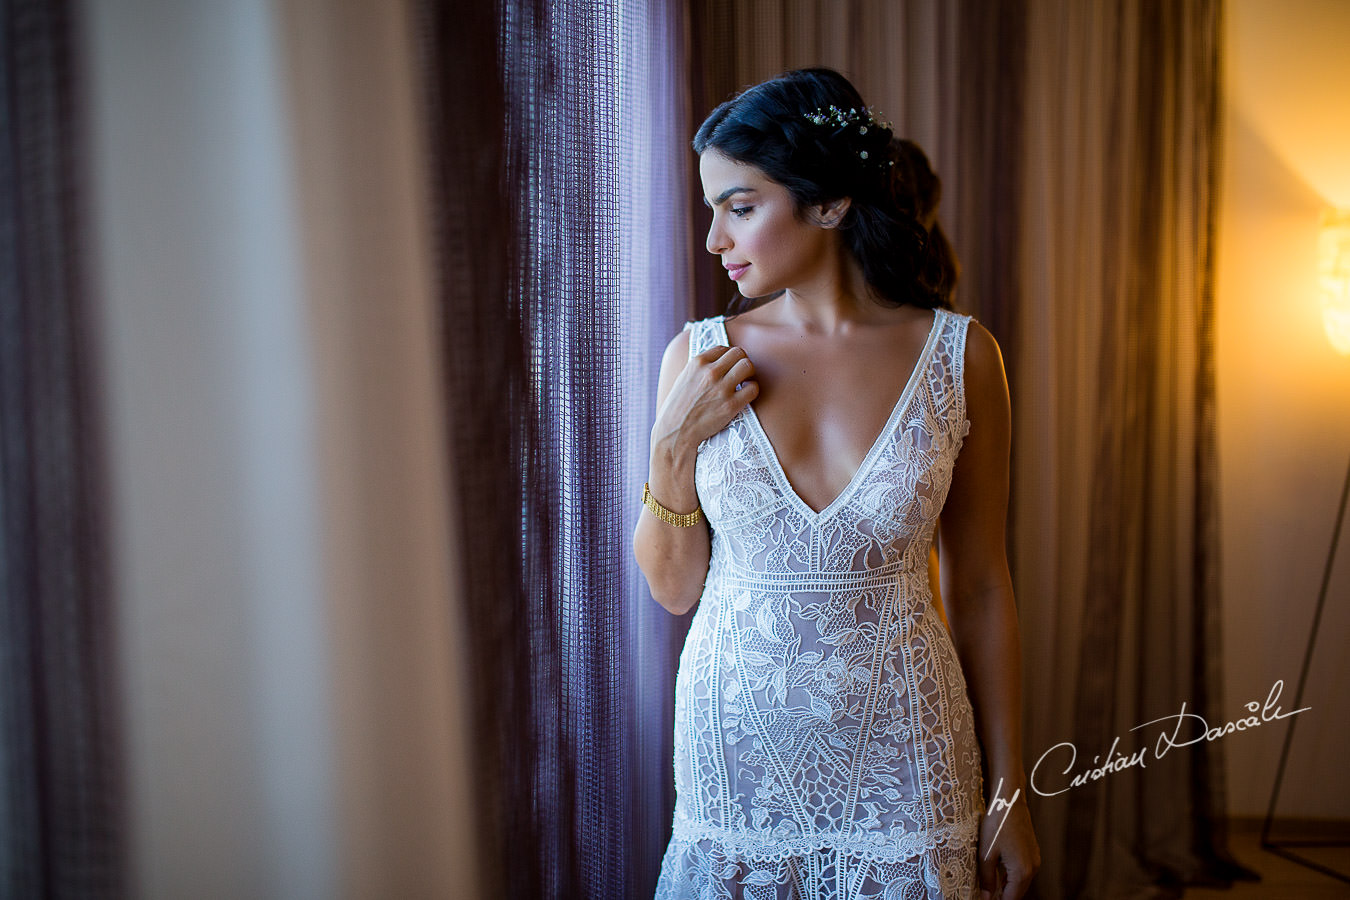 Beautiful Bridal Portrait captured during a wedding photography at the Lighthouse Limassol, by Cyprus Photographer Cristian Dascalu.